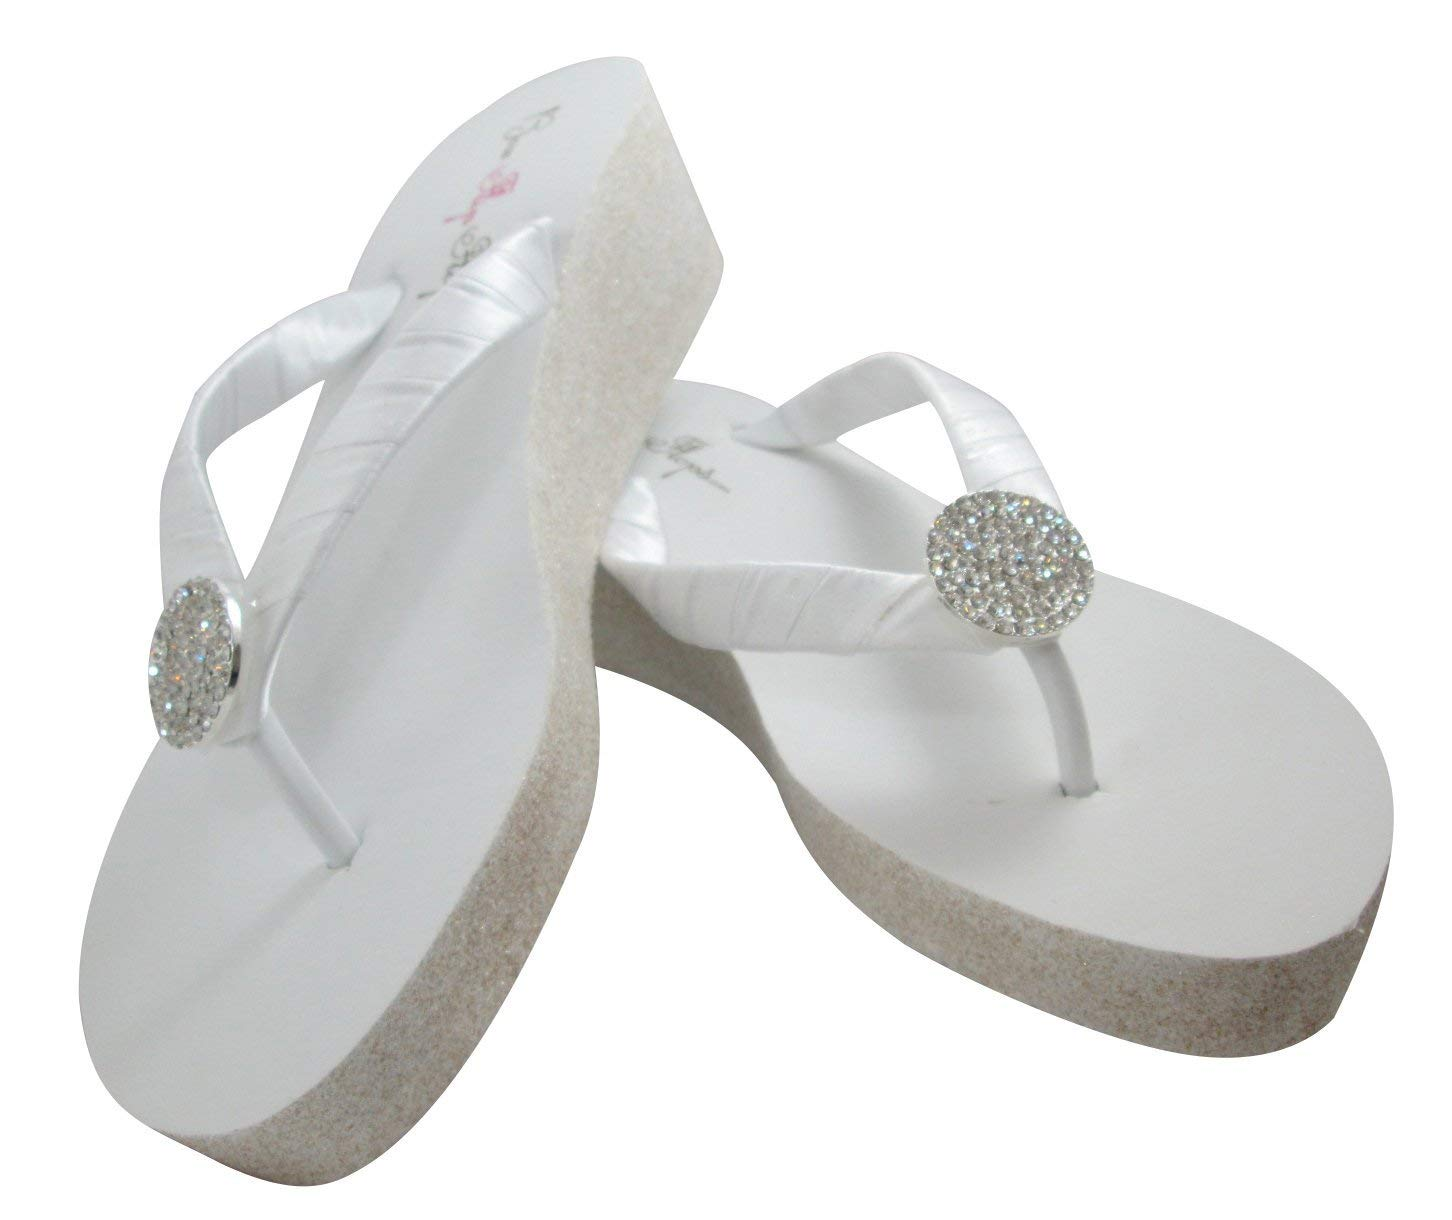 1bd8b61bd Get Quotations · Glitter 2 inch Heel Flip Flops Wedding White Wedges White  Silver Glitter Wedge Jewel Wedding Bridal